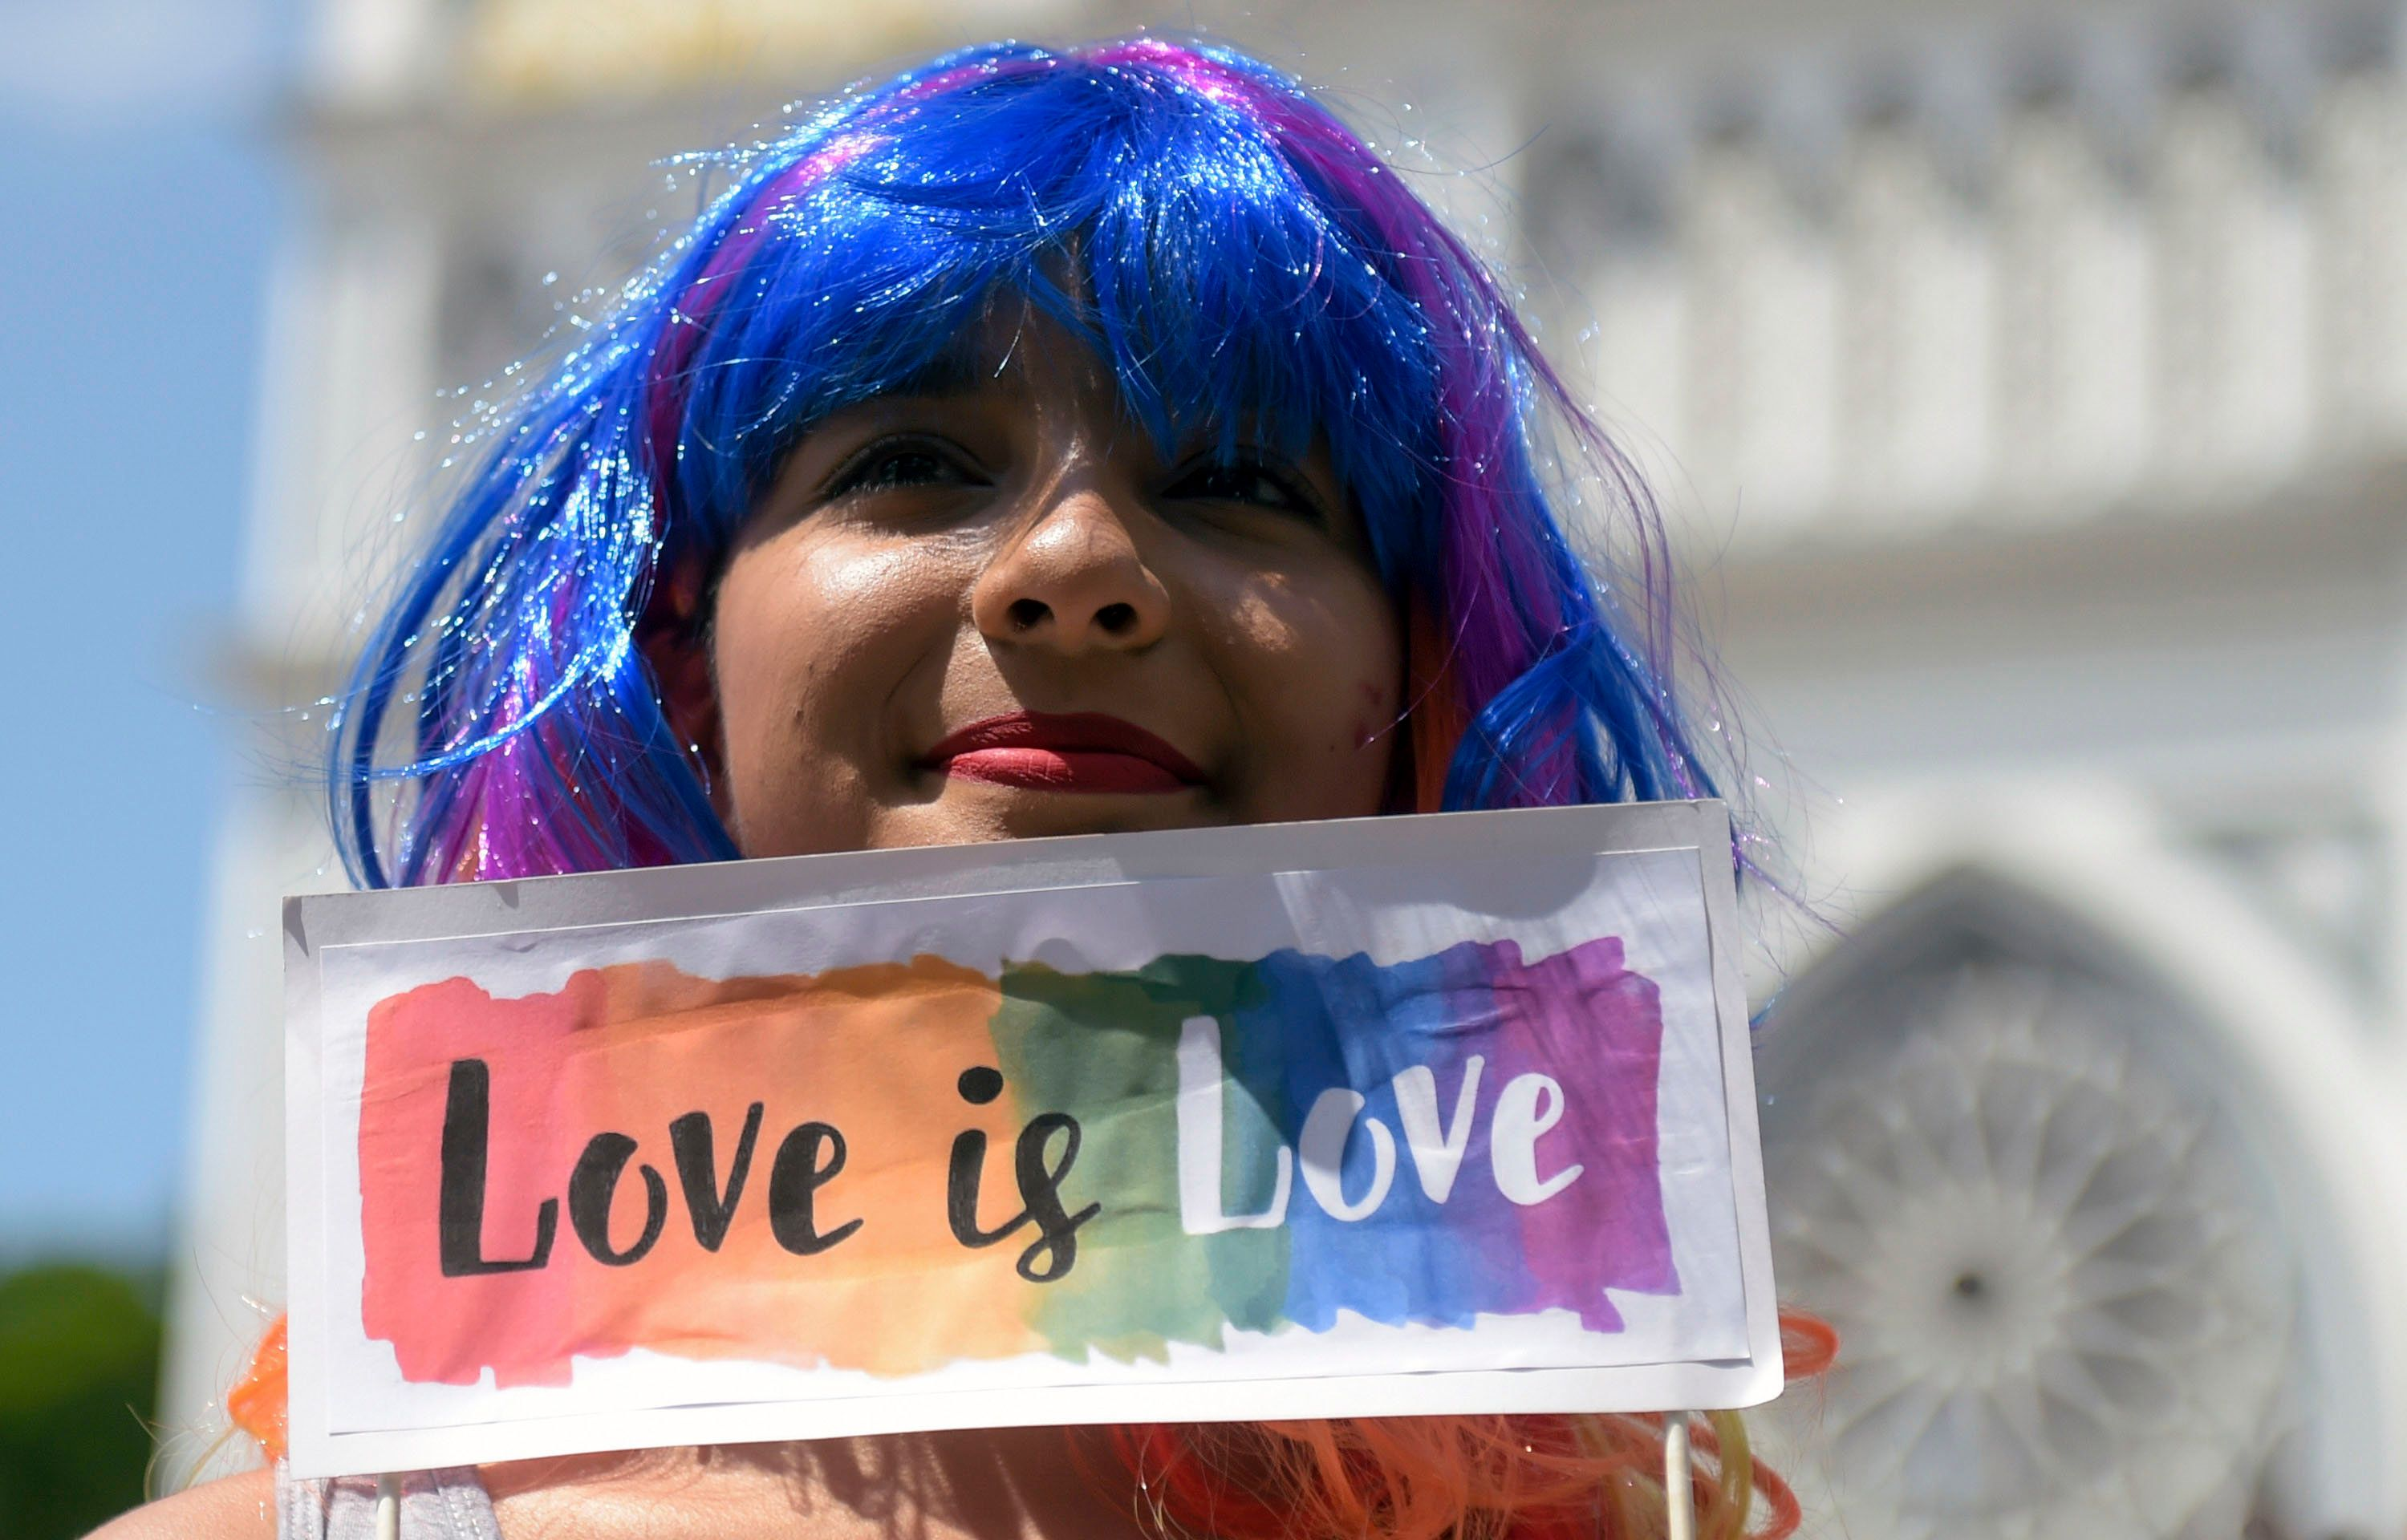 Members of the LGBT community and activists demonstrate in front of Carmen church in Panama City, to make visible sexual and gender diversity during Pope Fracis' visit to Panama for the World Youth Day, on Juanury 25, 2019. (Photo by Raul Arboleda / AFP)        (Photo credit should read RAUL ARBOLEDA/AFP/Getty Images)